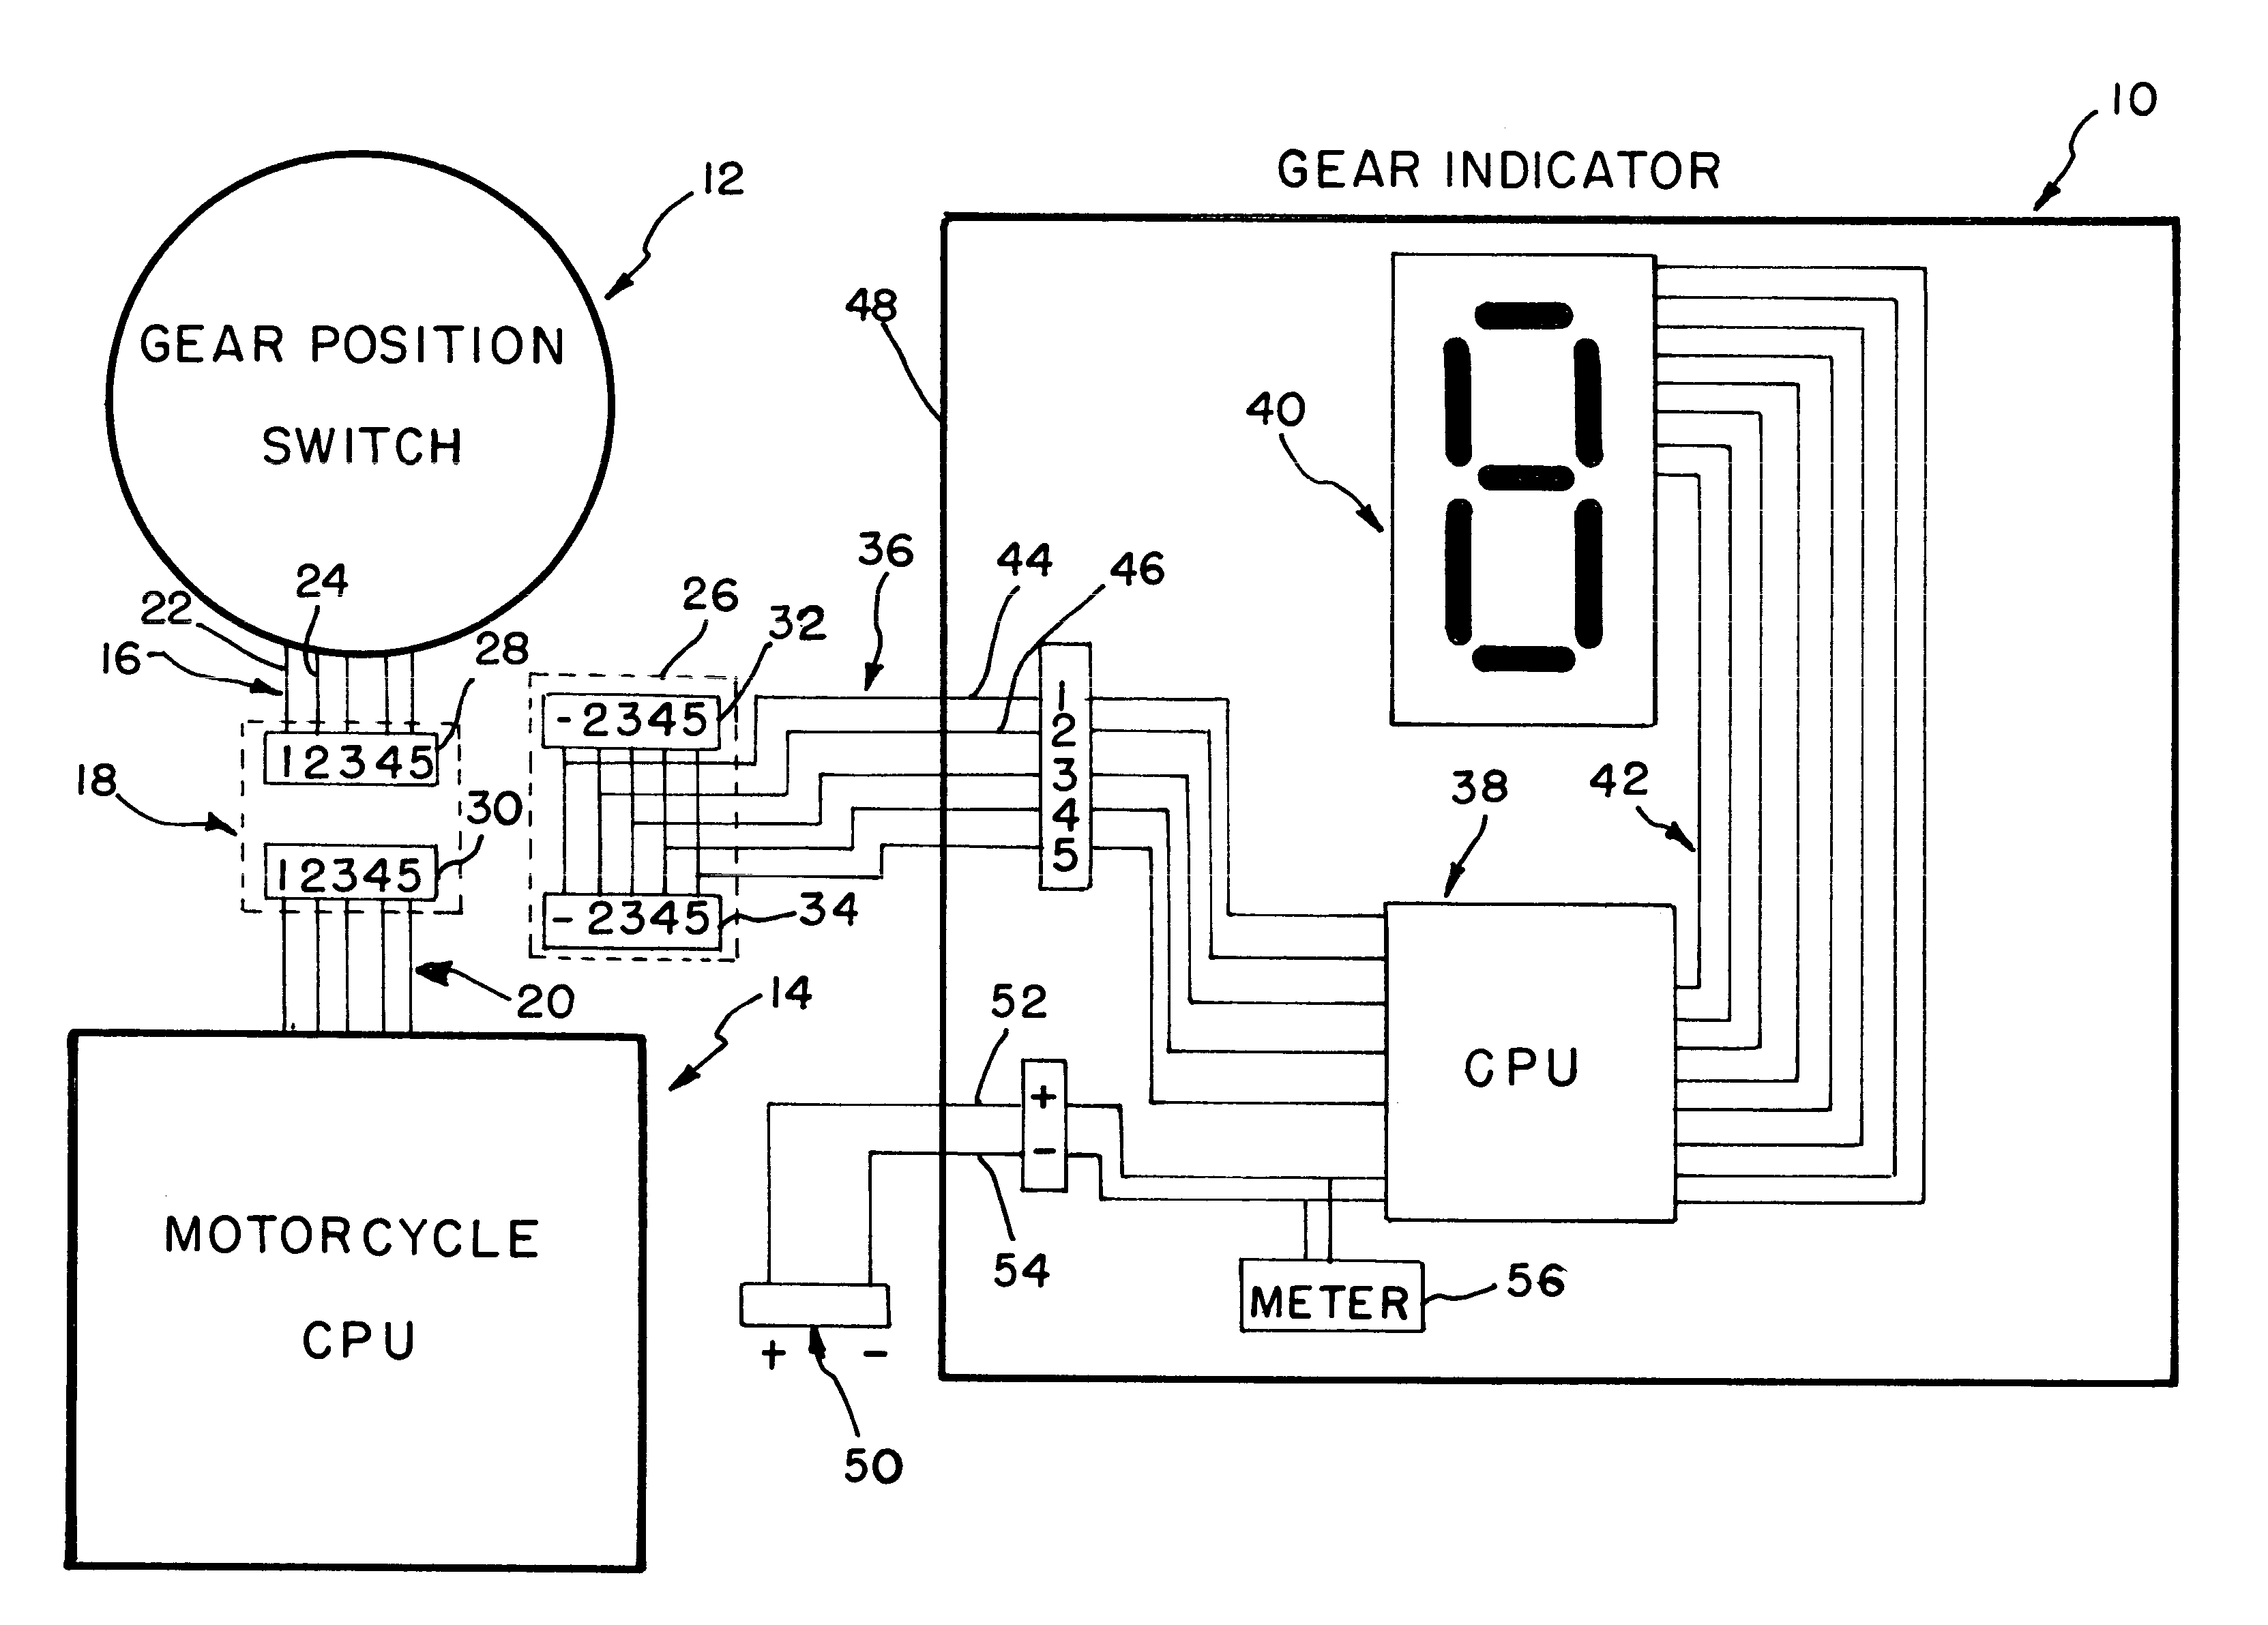 Patent Us6462651 - Gear Indicator